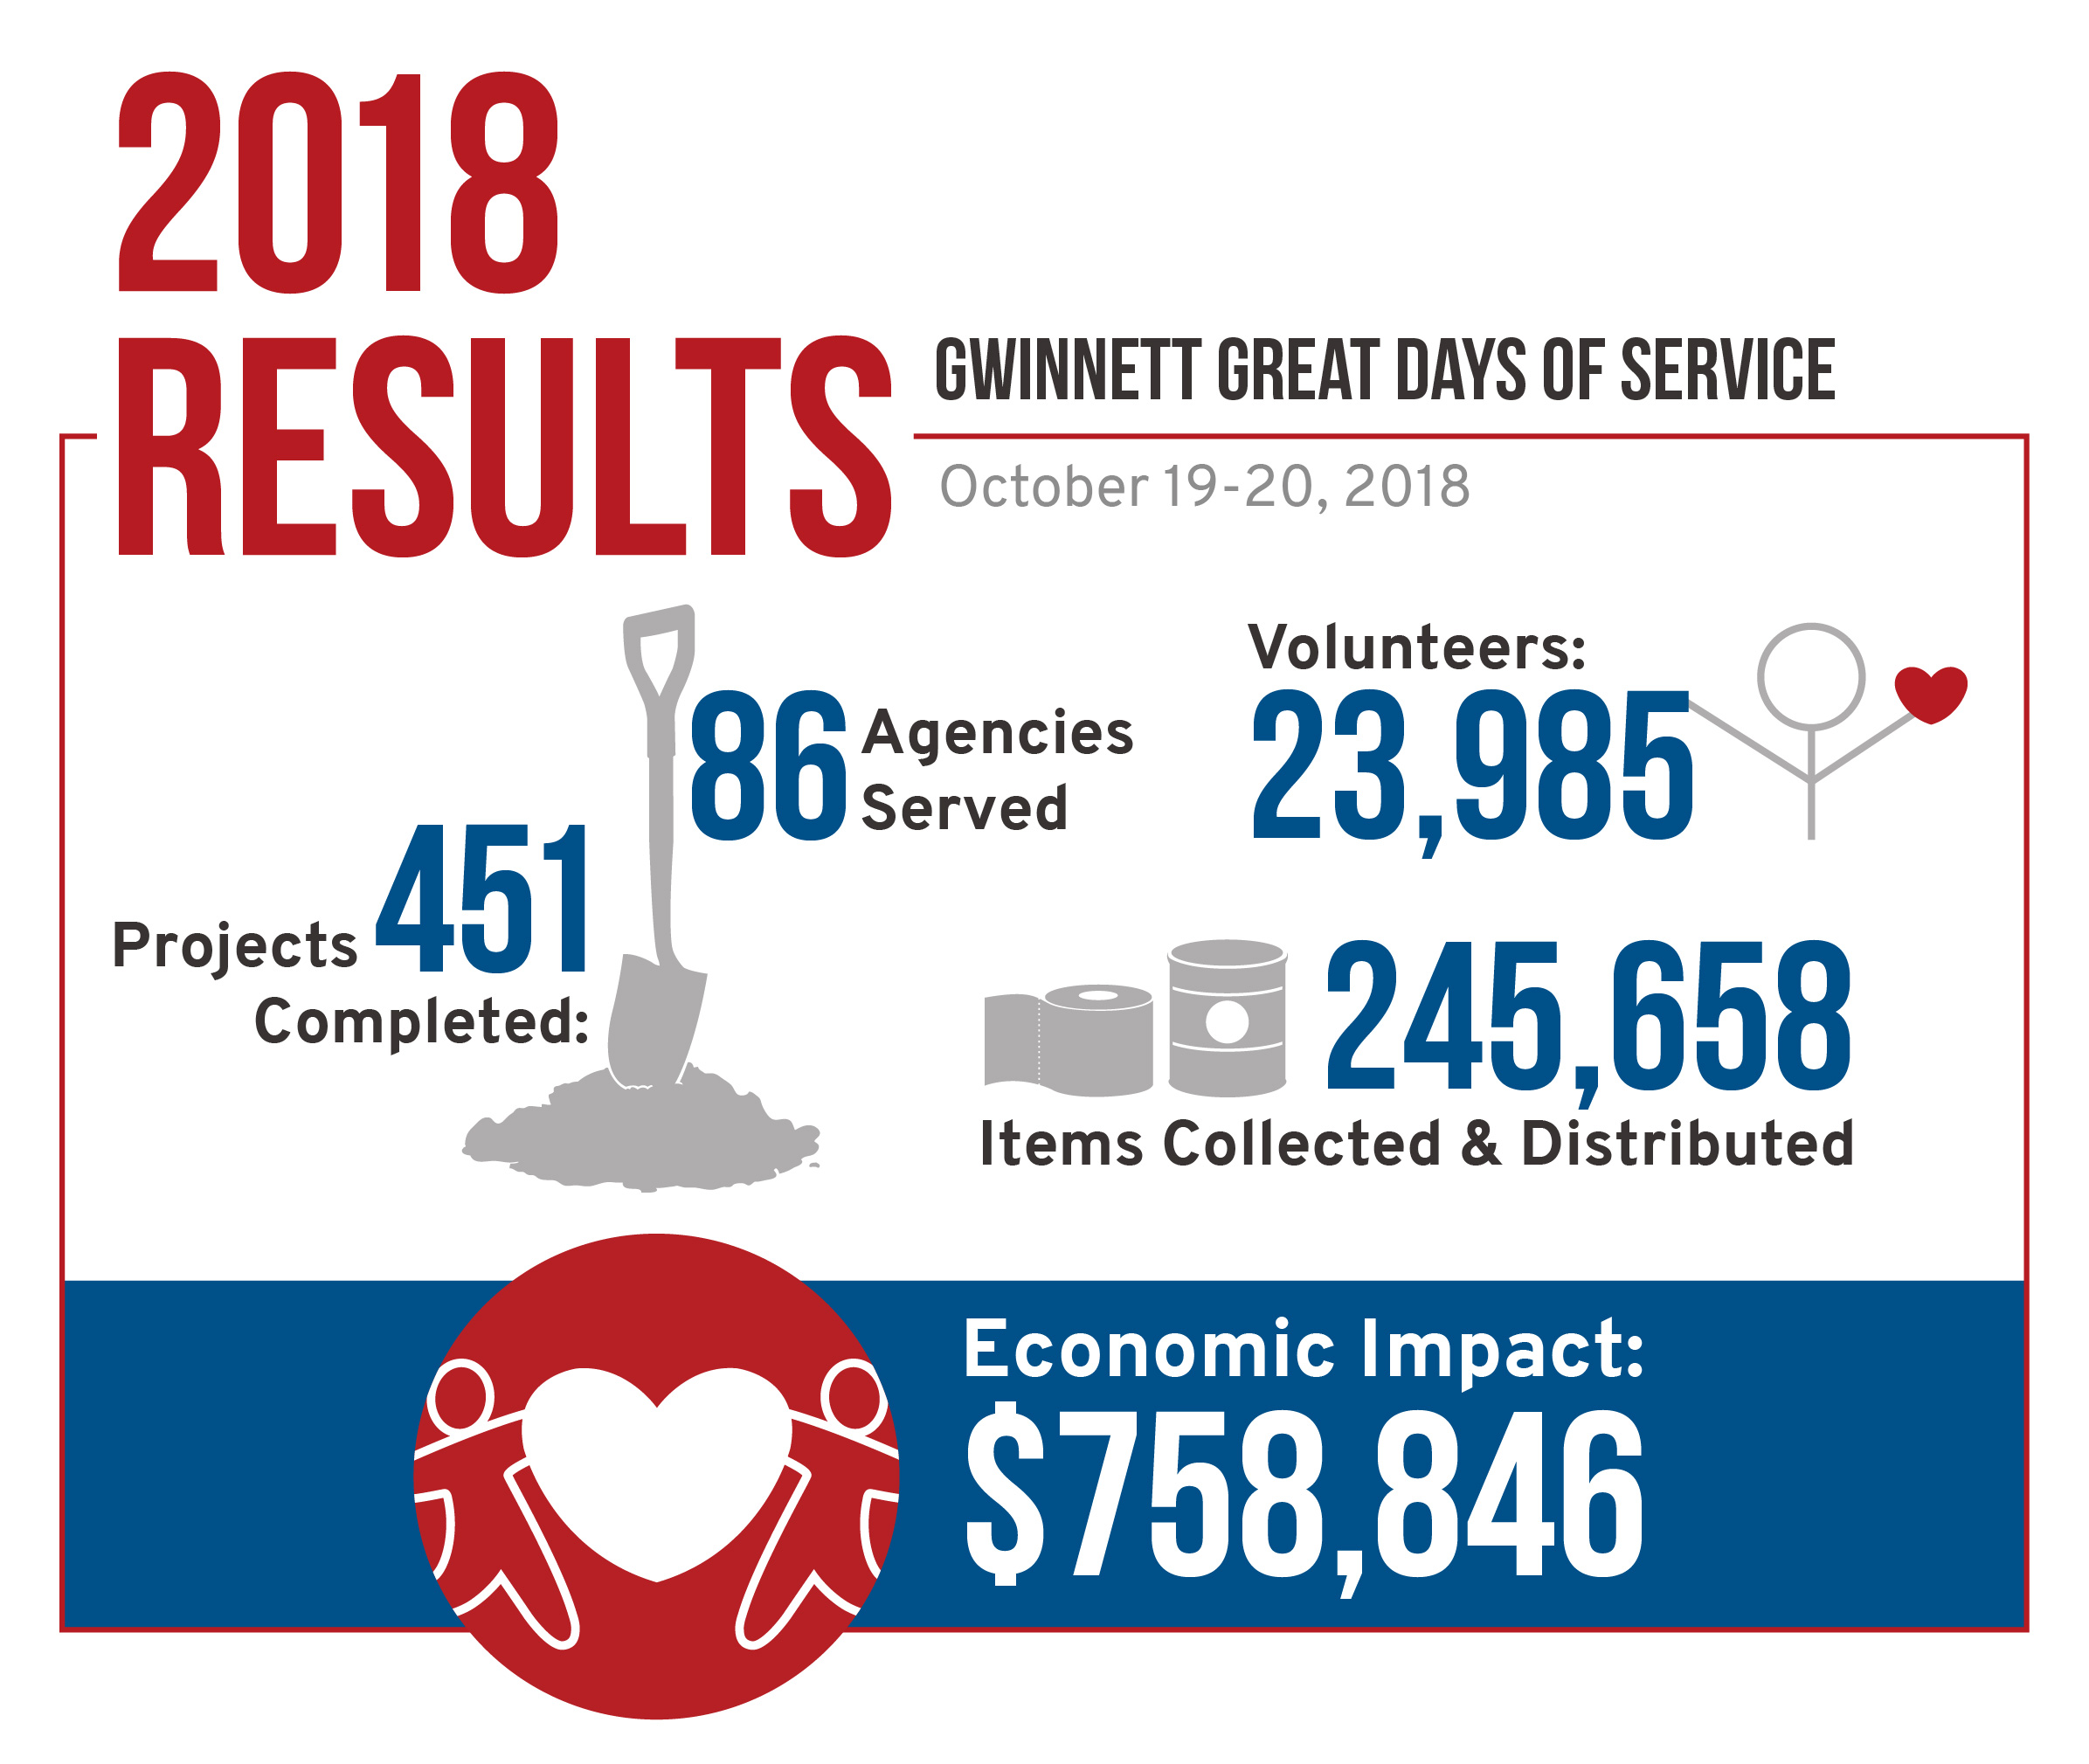 2018 Results Infographic